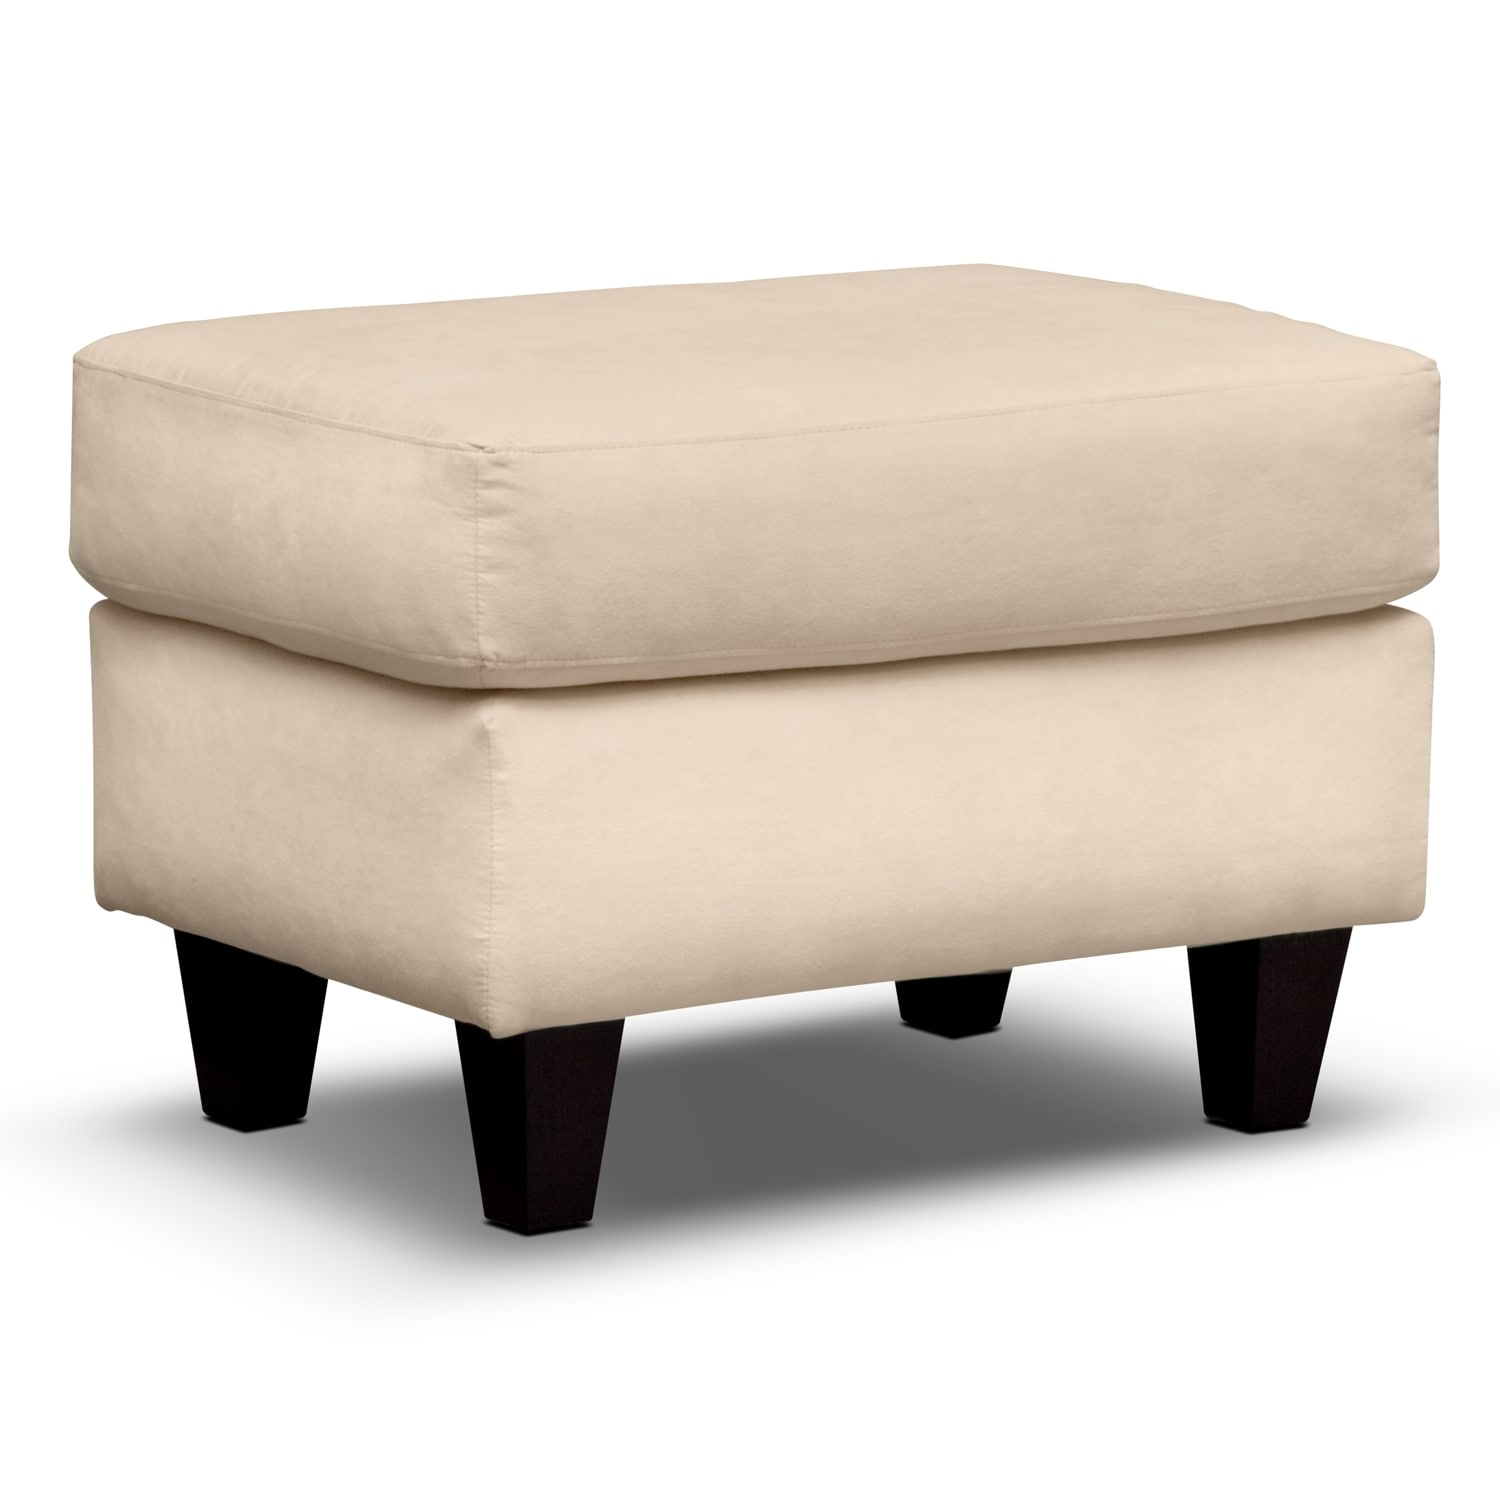 West Village Ottoman - Cream